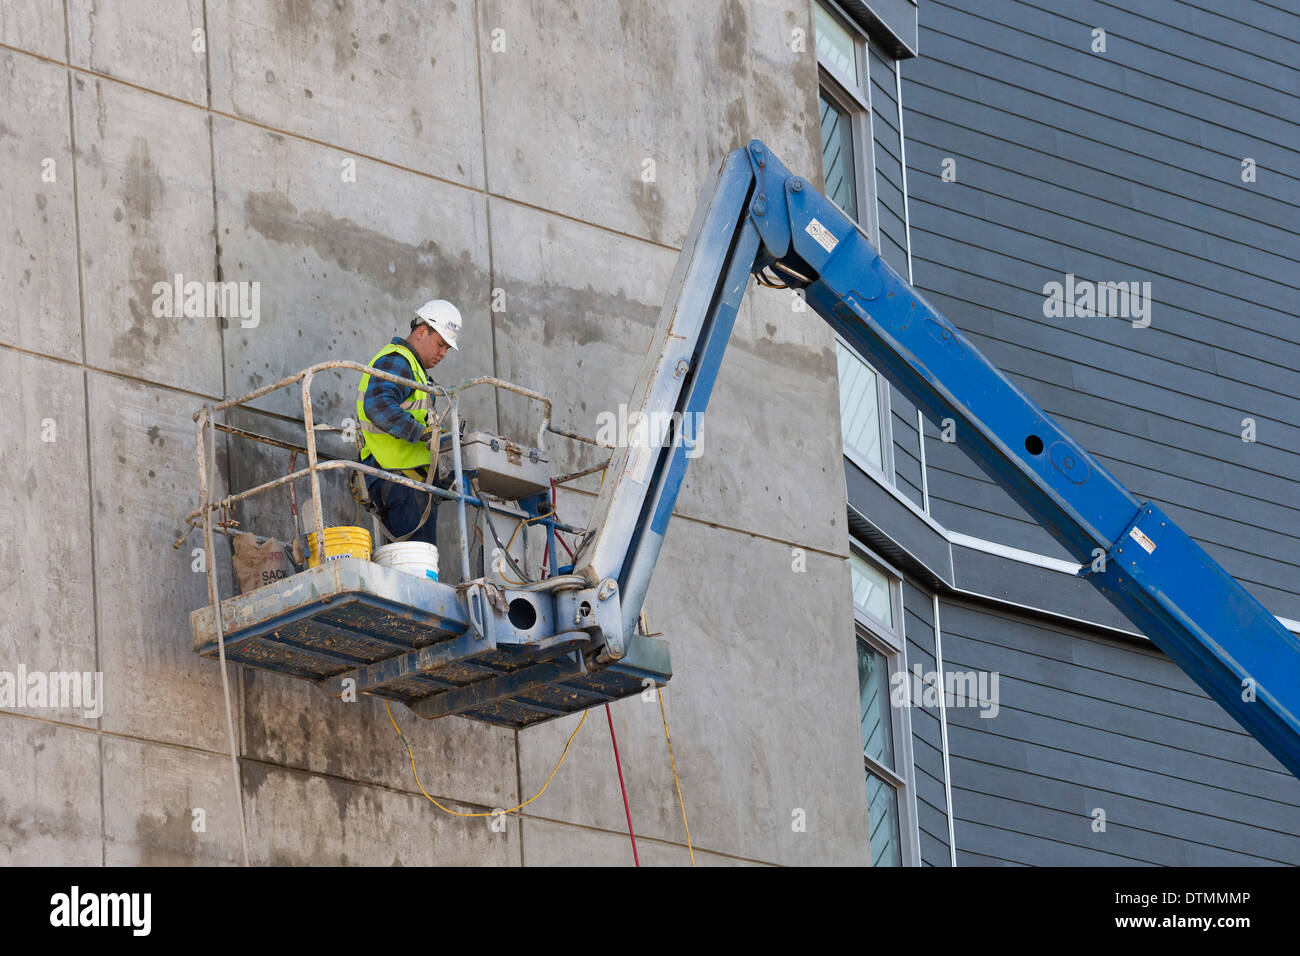 d02812b502b54 Construction worker working on platform on side of concrete building-Victoria